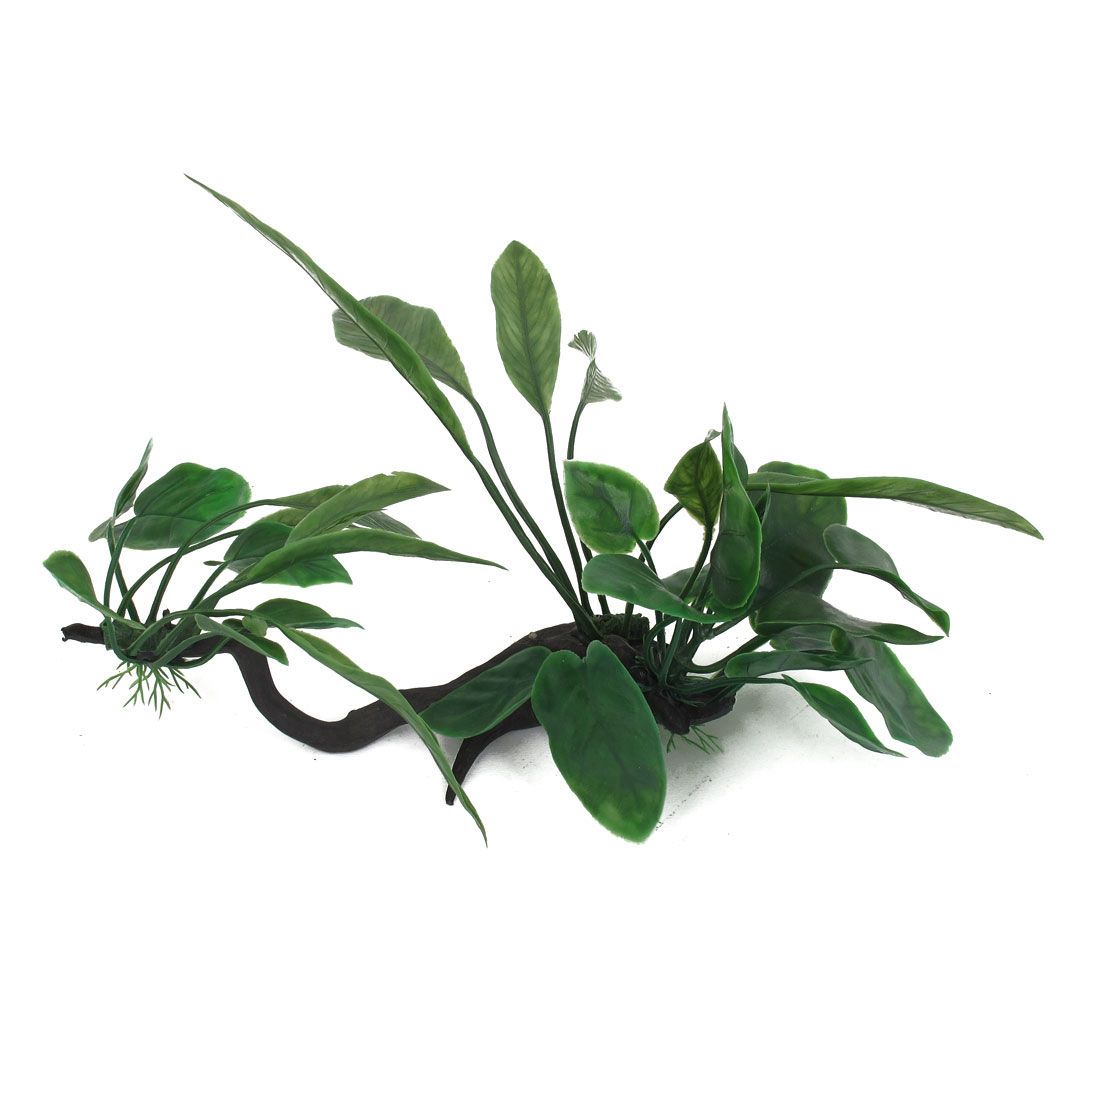 "6.7"" Height Green Plastic Oval Shaped Leaf Underwater Emulational Ornament Plant for Fish Tank Aquarium"